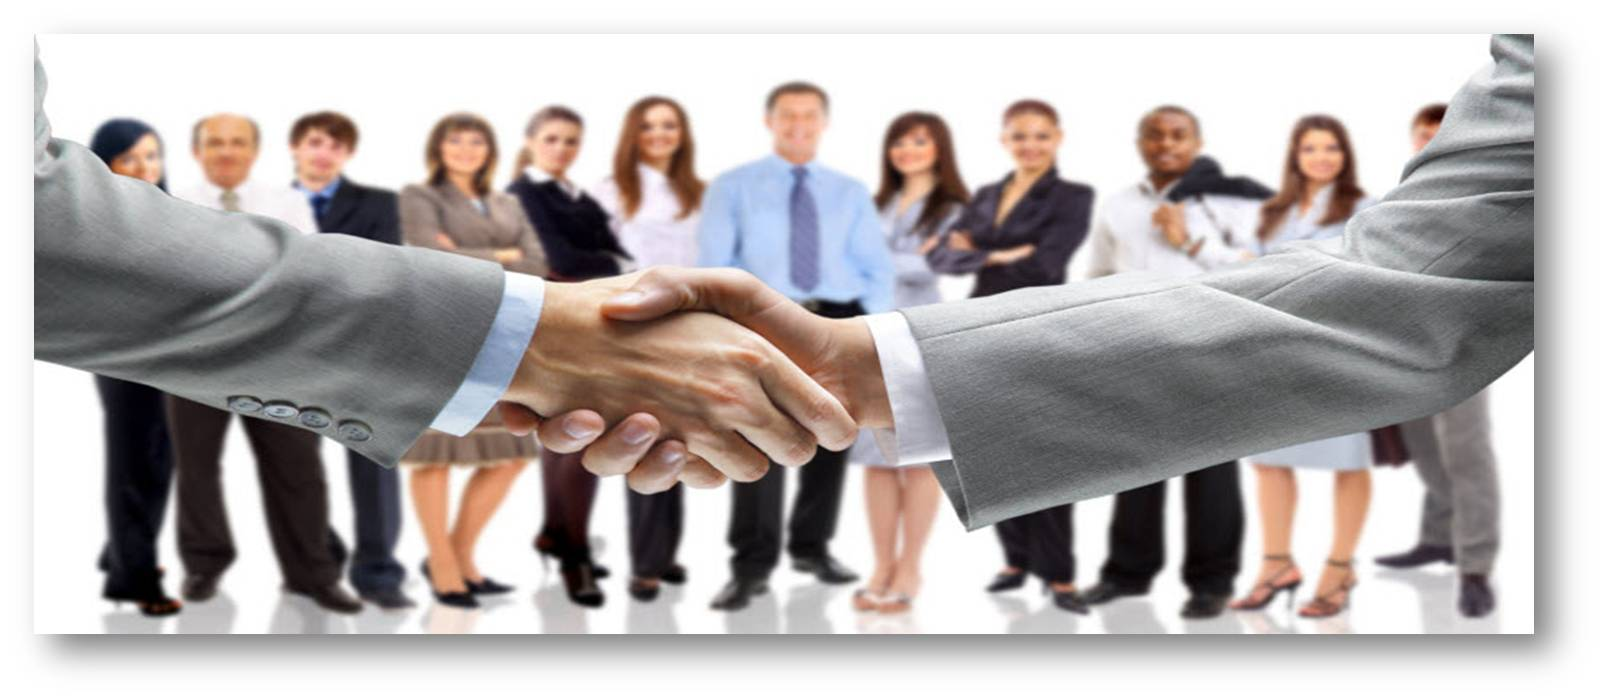 biznetworker expand your professional network